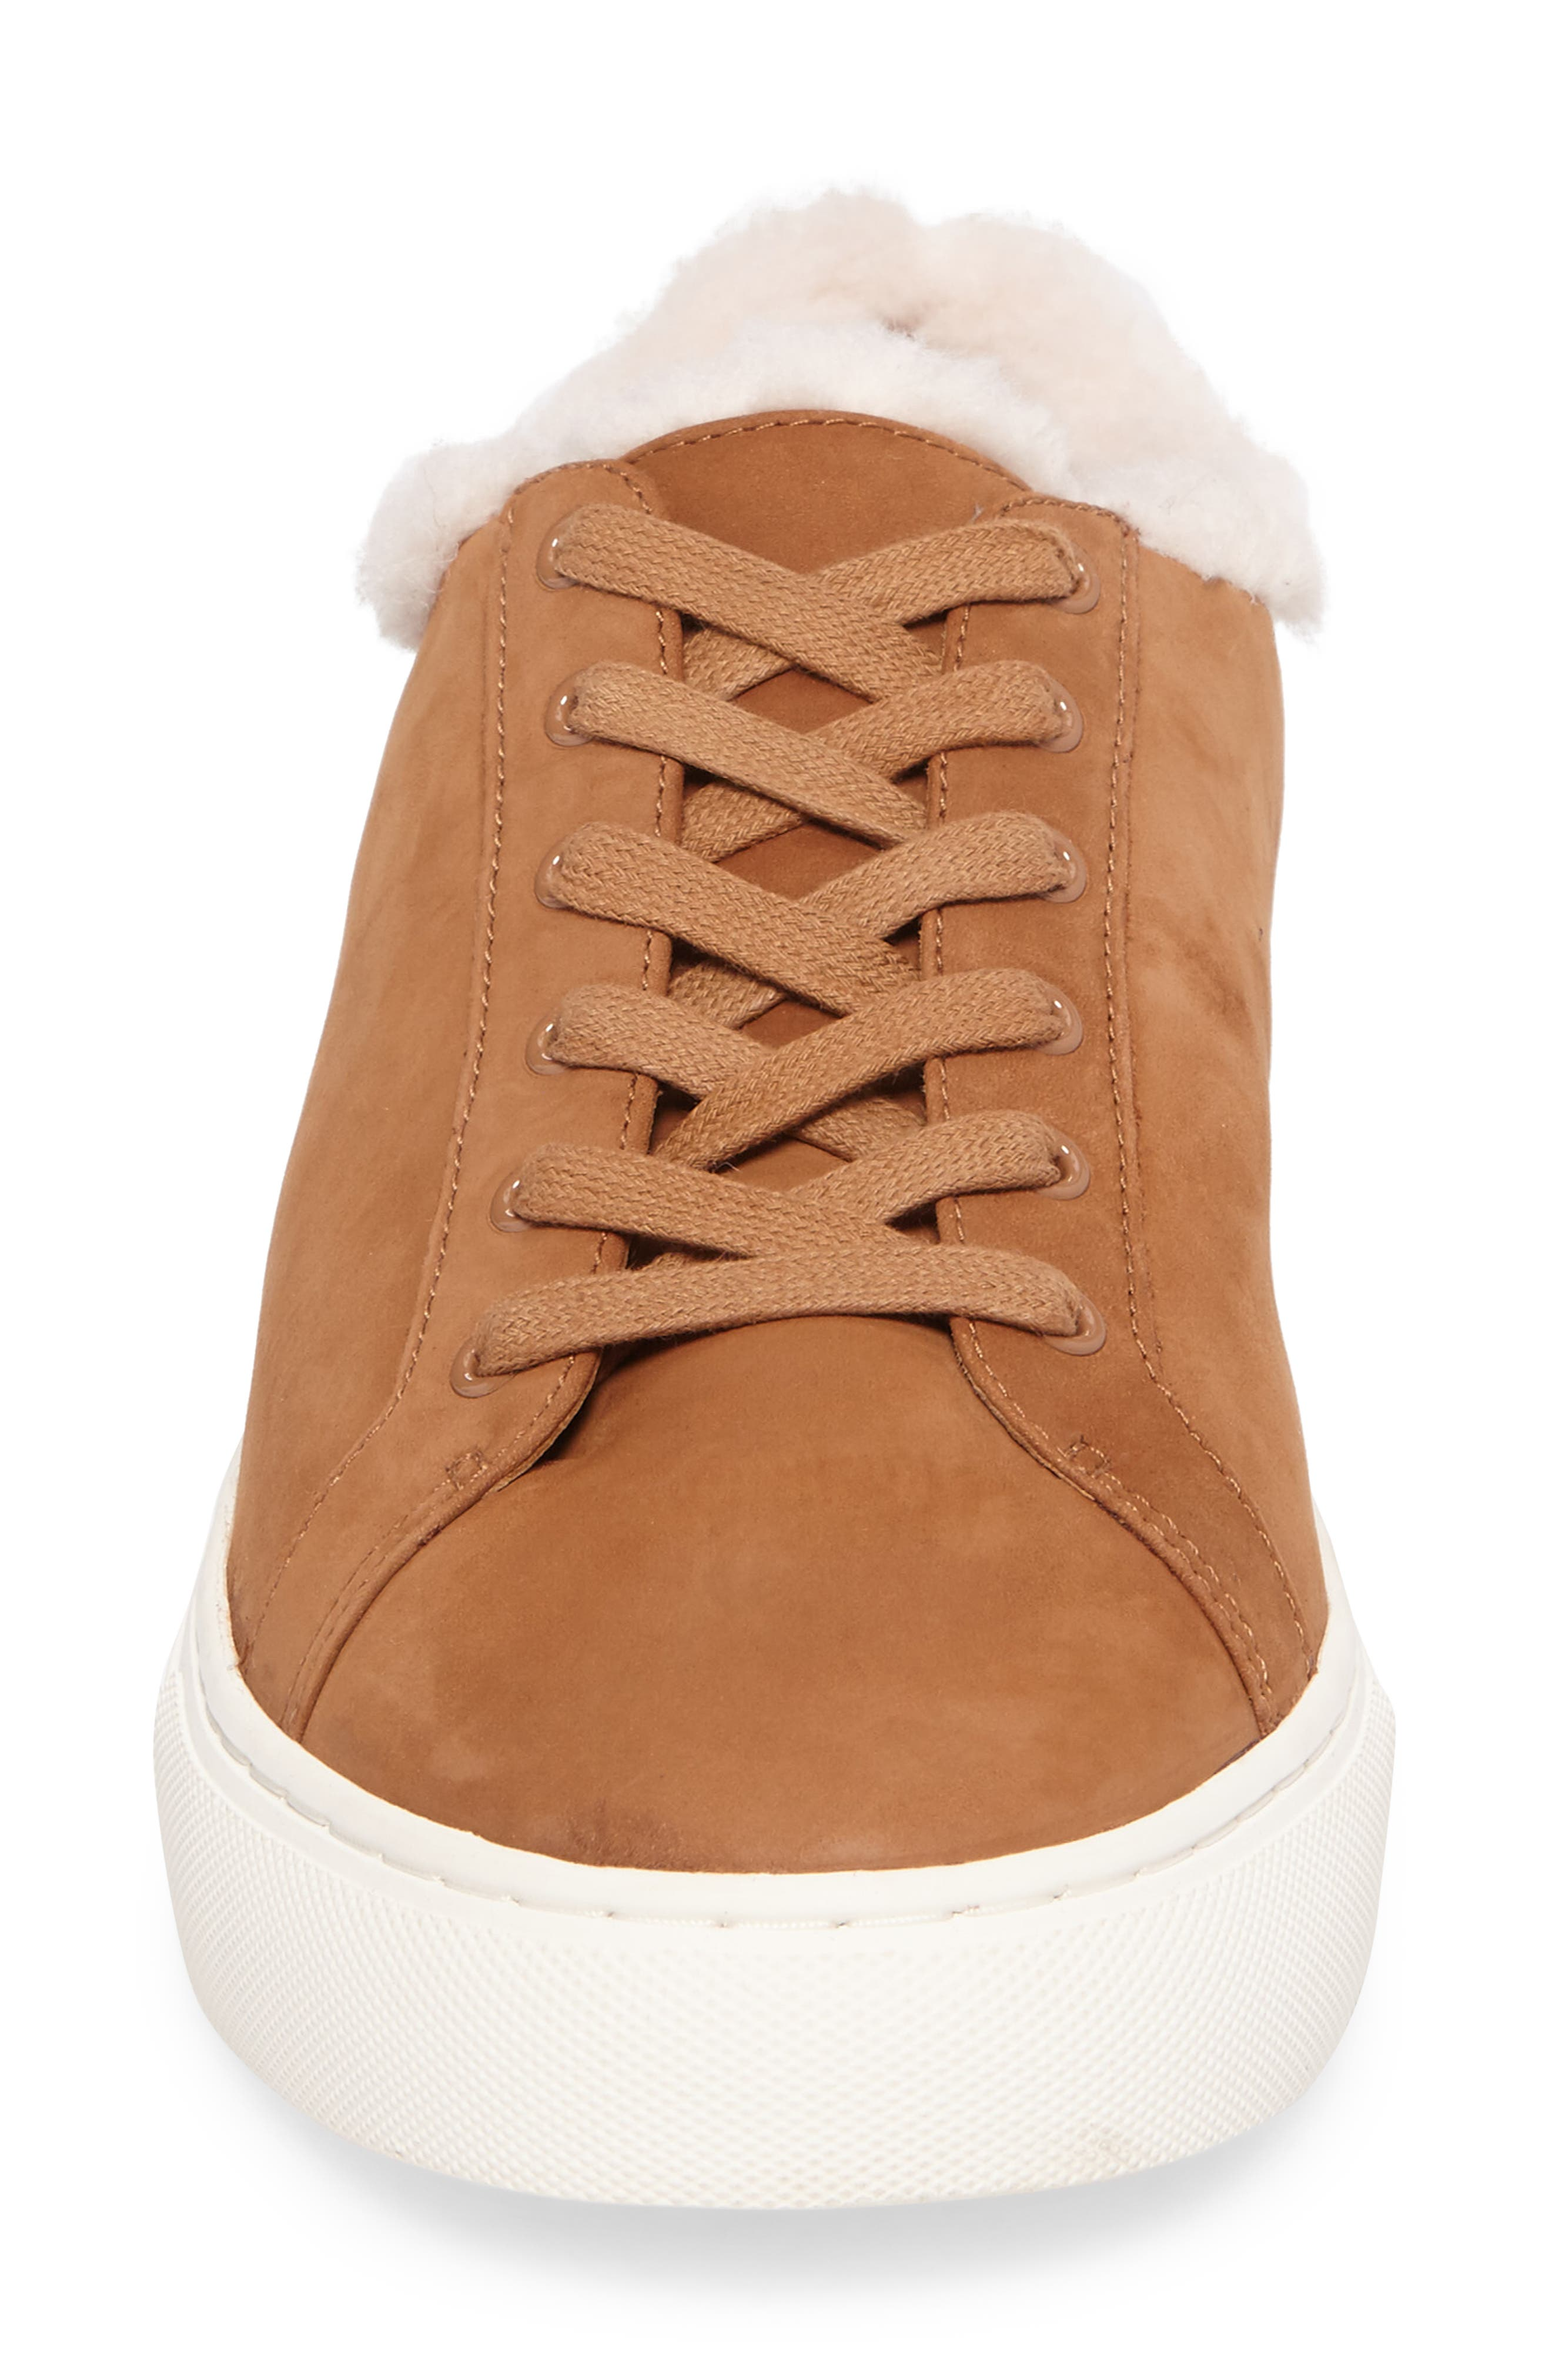 Lawrence Genuine Shearling Lined Sneaker,                             Alternate thumbnail 8, color,